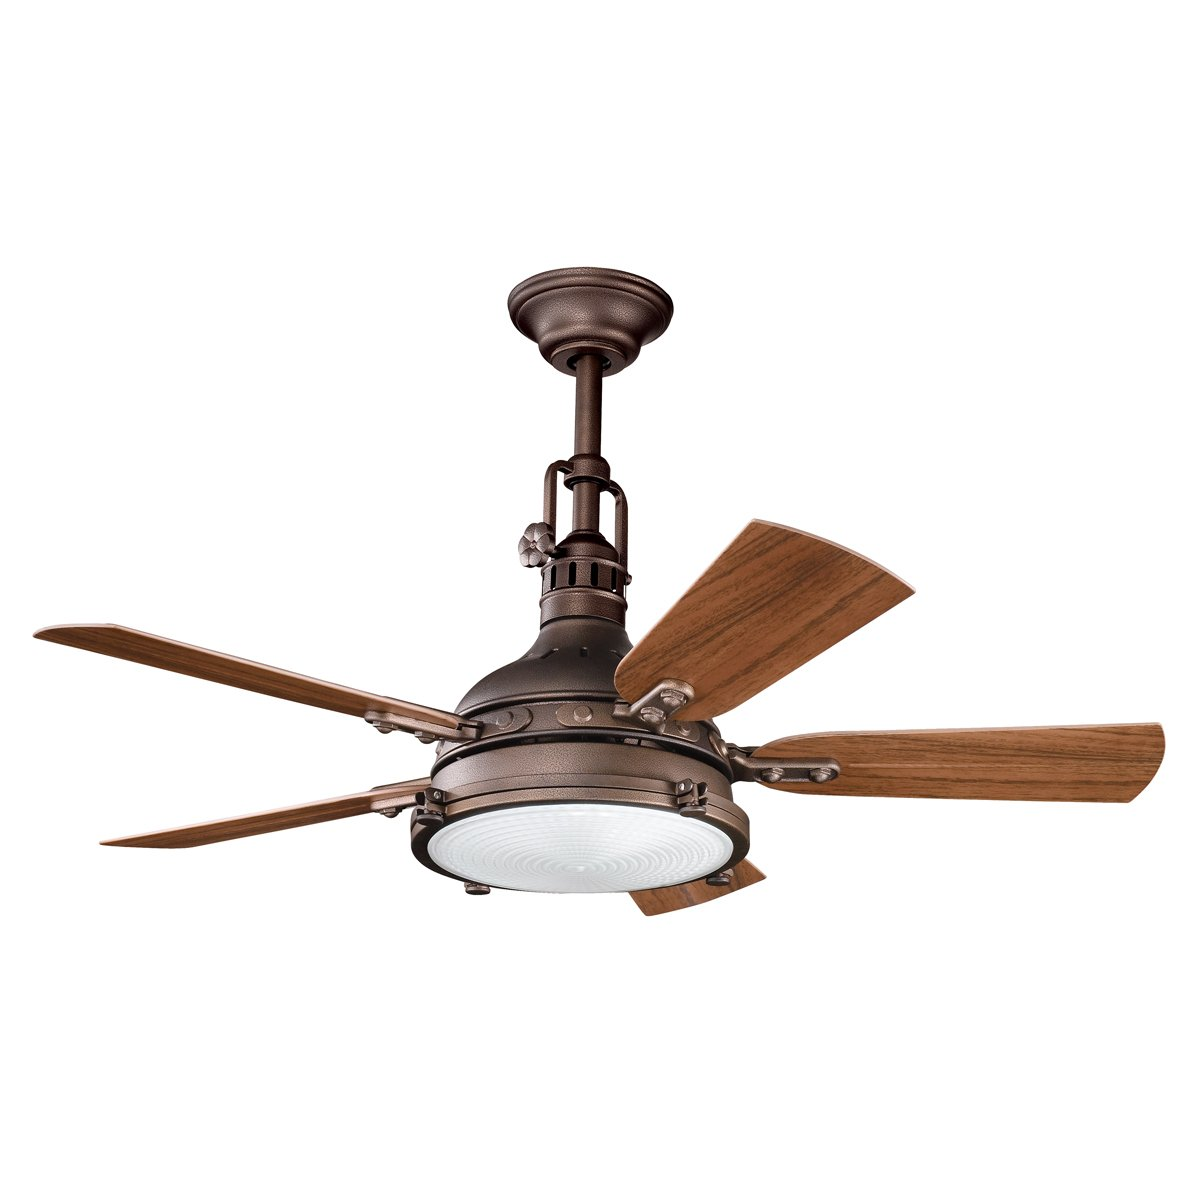 mount lowes us at flush com fans ceiling shop ceilings inch amazing oksunglassesn